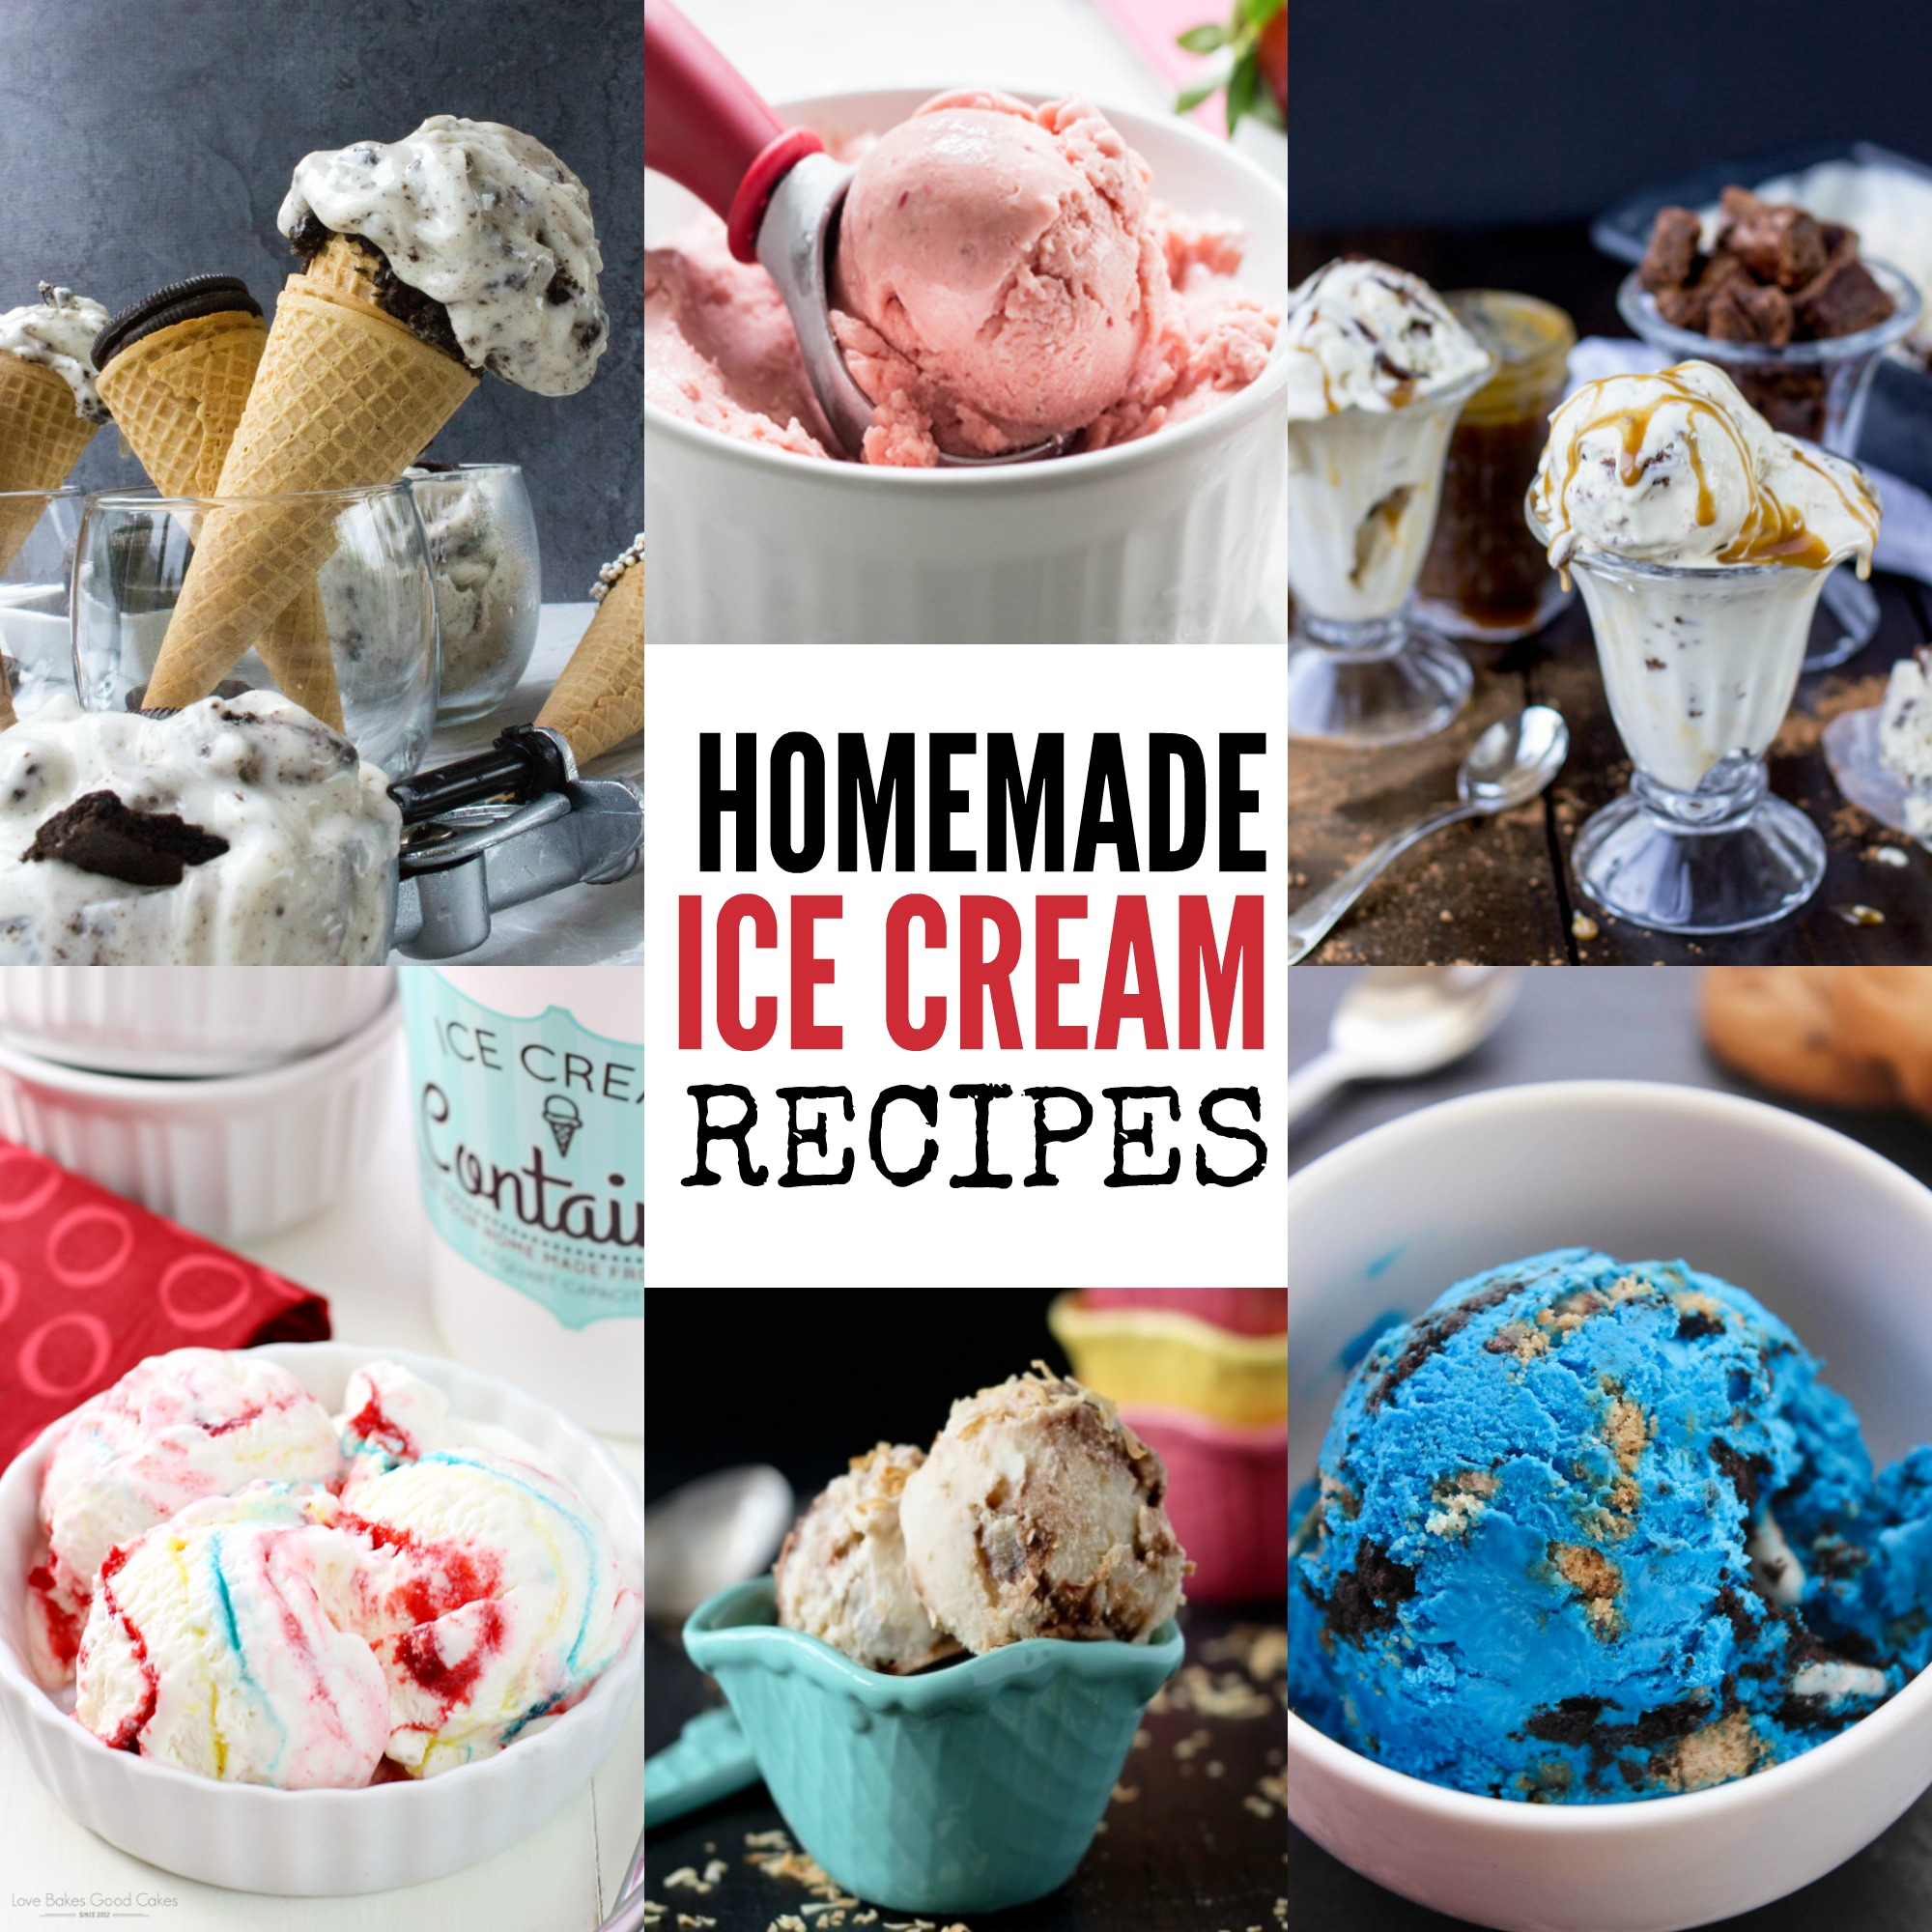 Recipes For Homemade Ice Cream- 30 Homemade Ice Cream Recipes